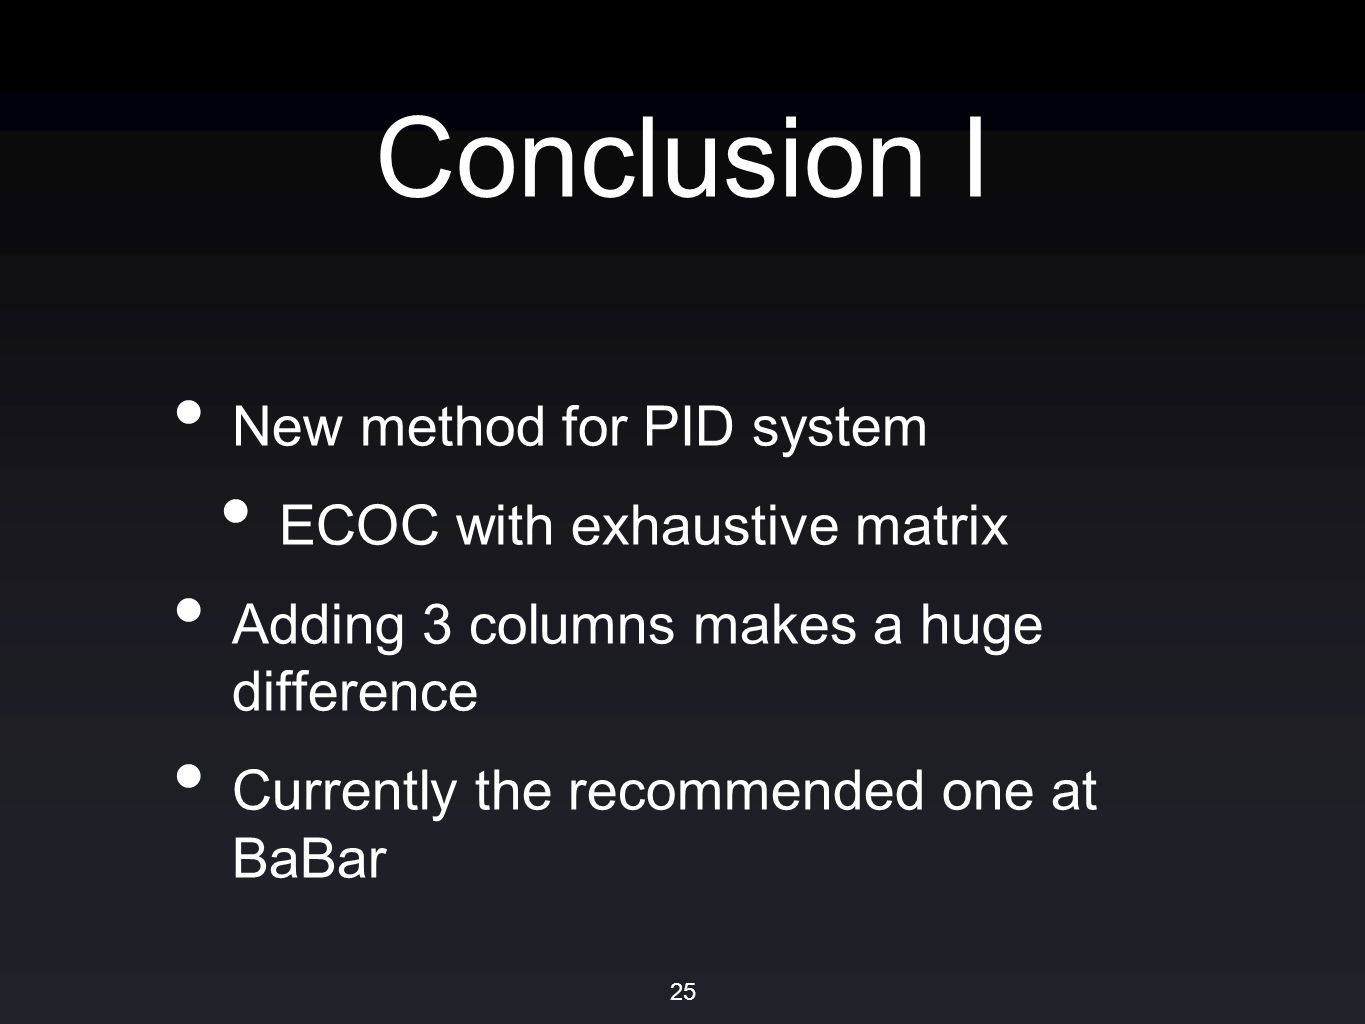 Conclusion I New method for PID system ECOC with exhaustive matrix Adding 3 columns makes a huge difference Currently the recommended one at BaBar 25